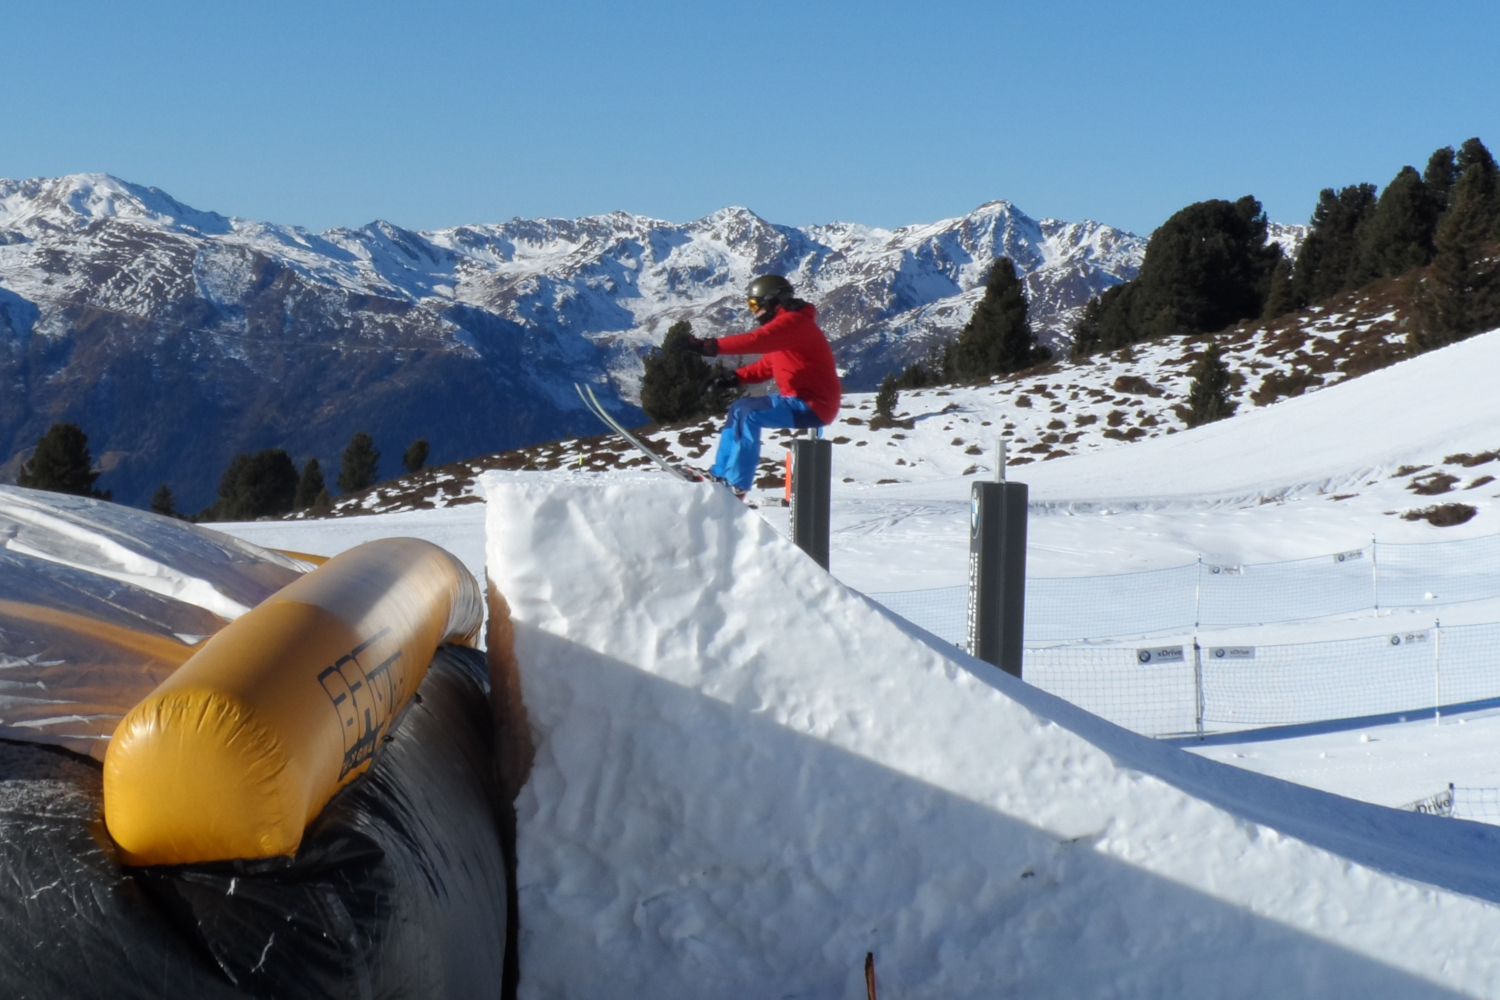 Andrew taking the leap - ski jump in the Zillertal